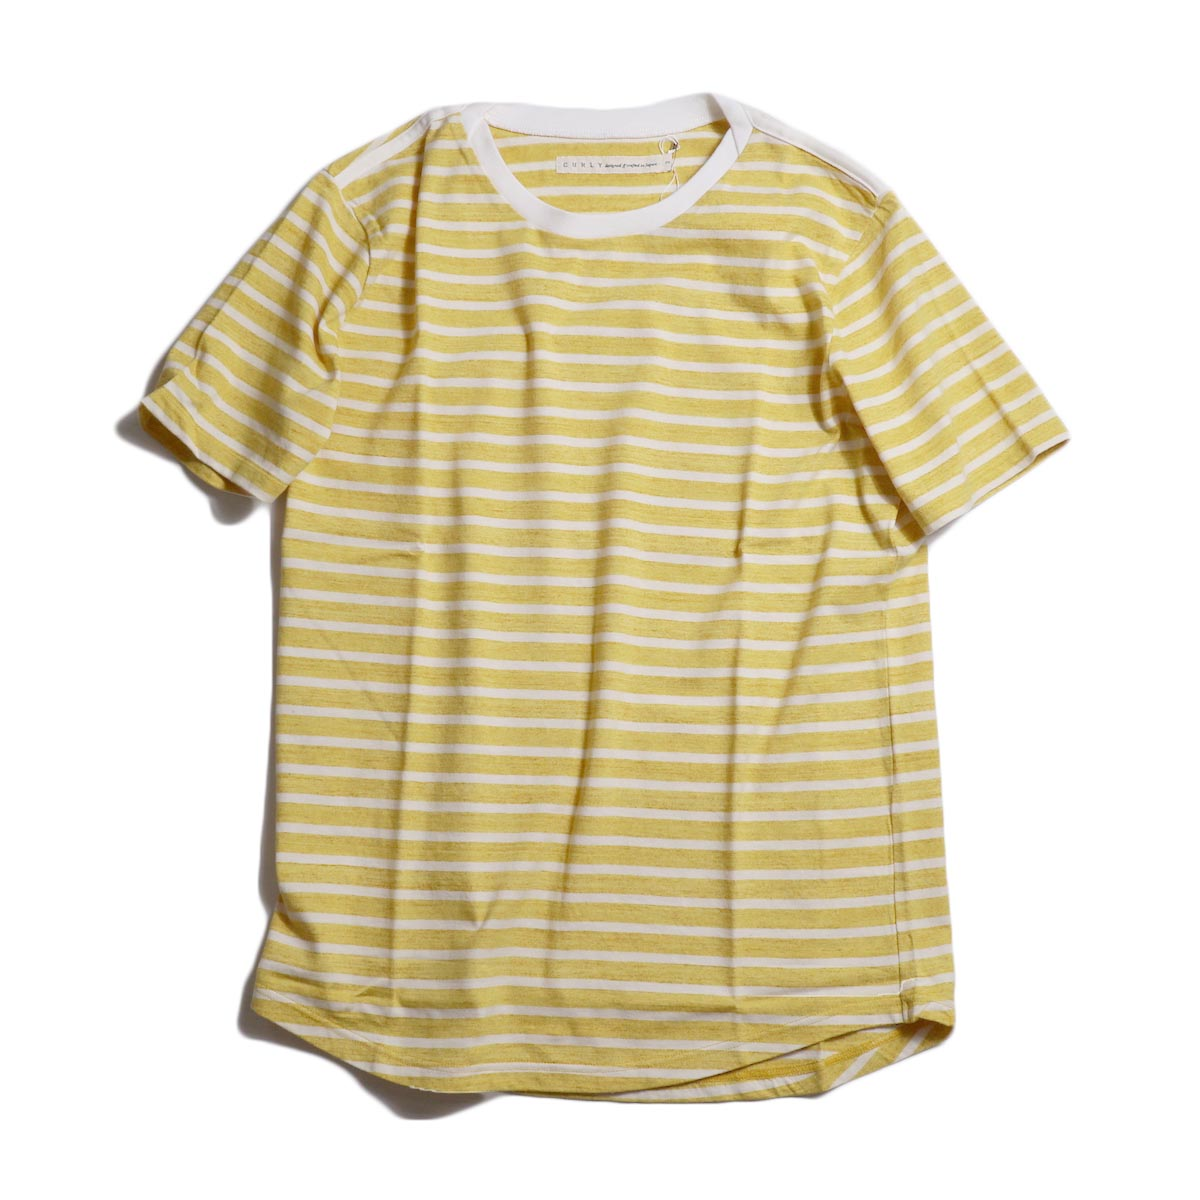 CURLY / BRUSH BORDER SS TEE -Yellow/White